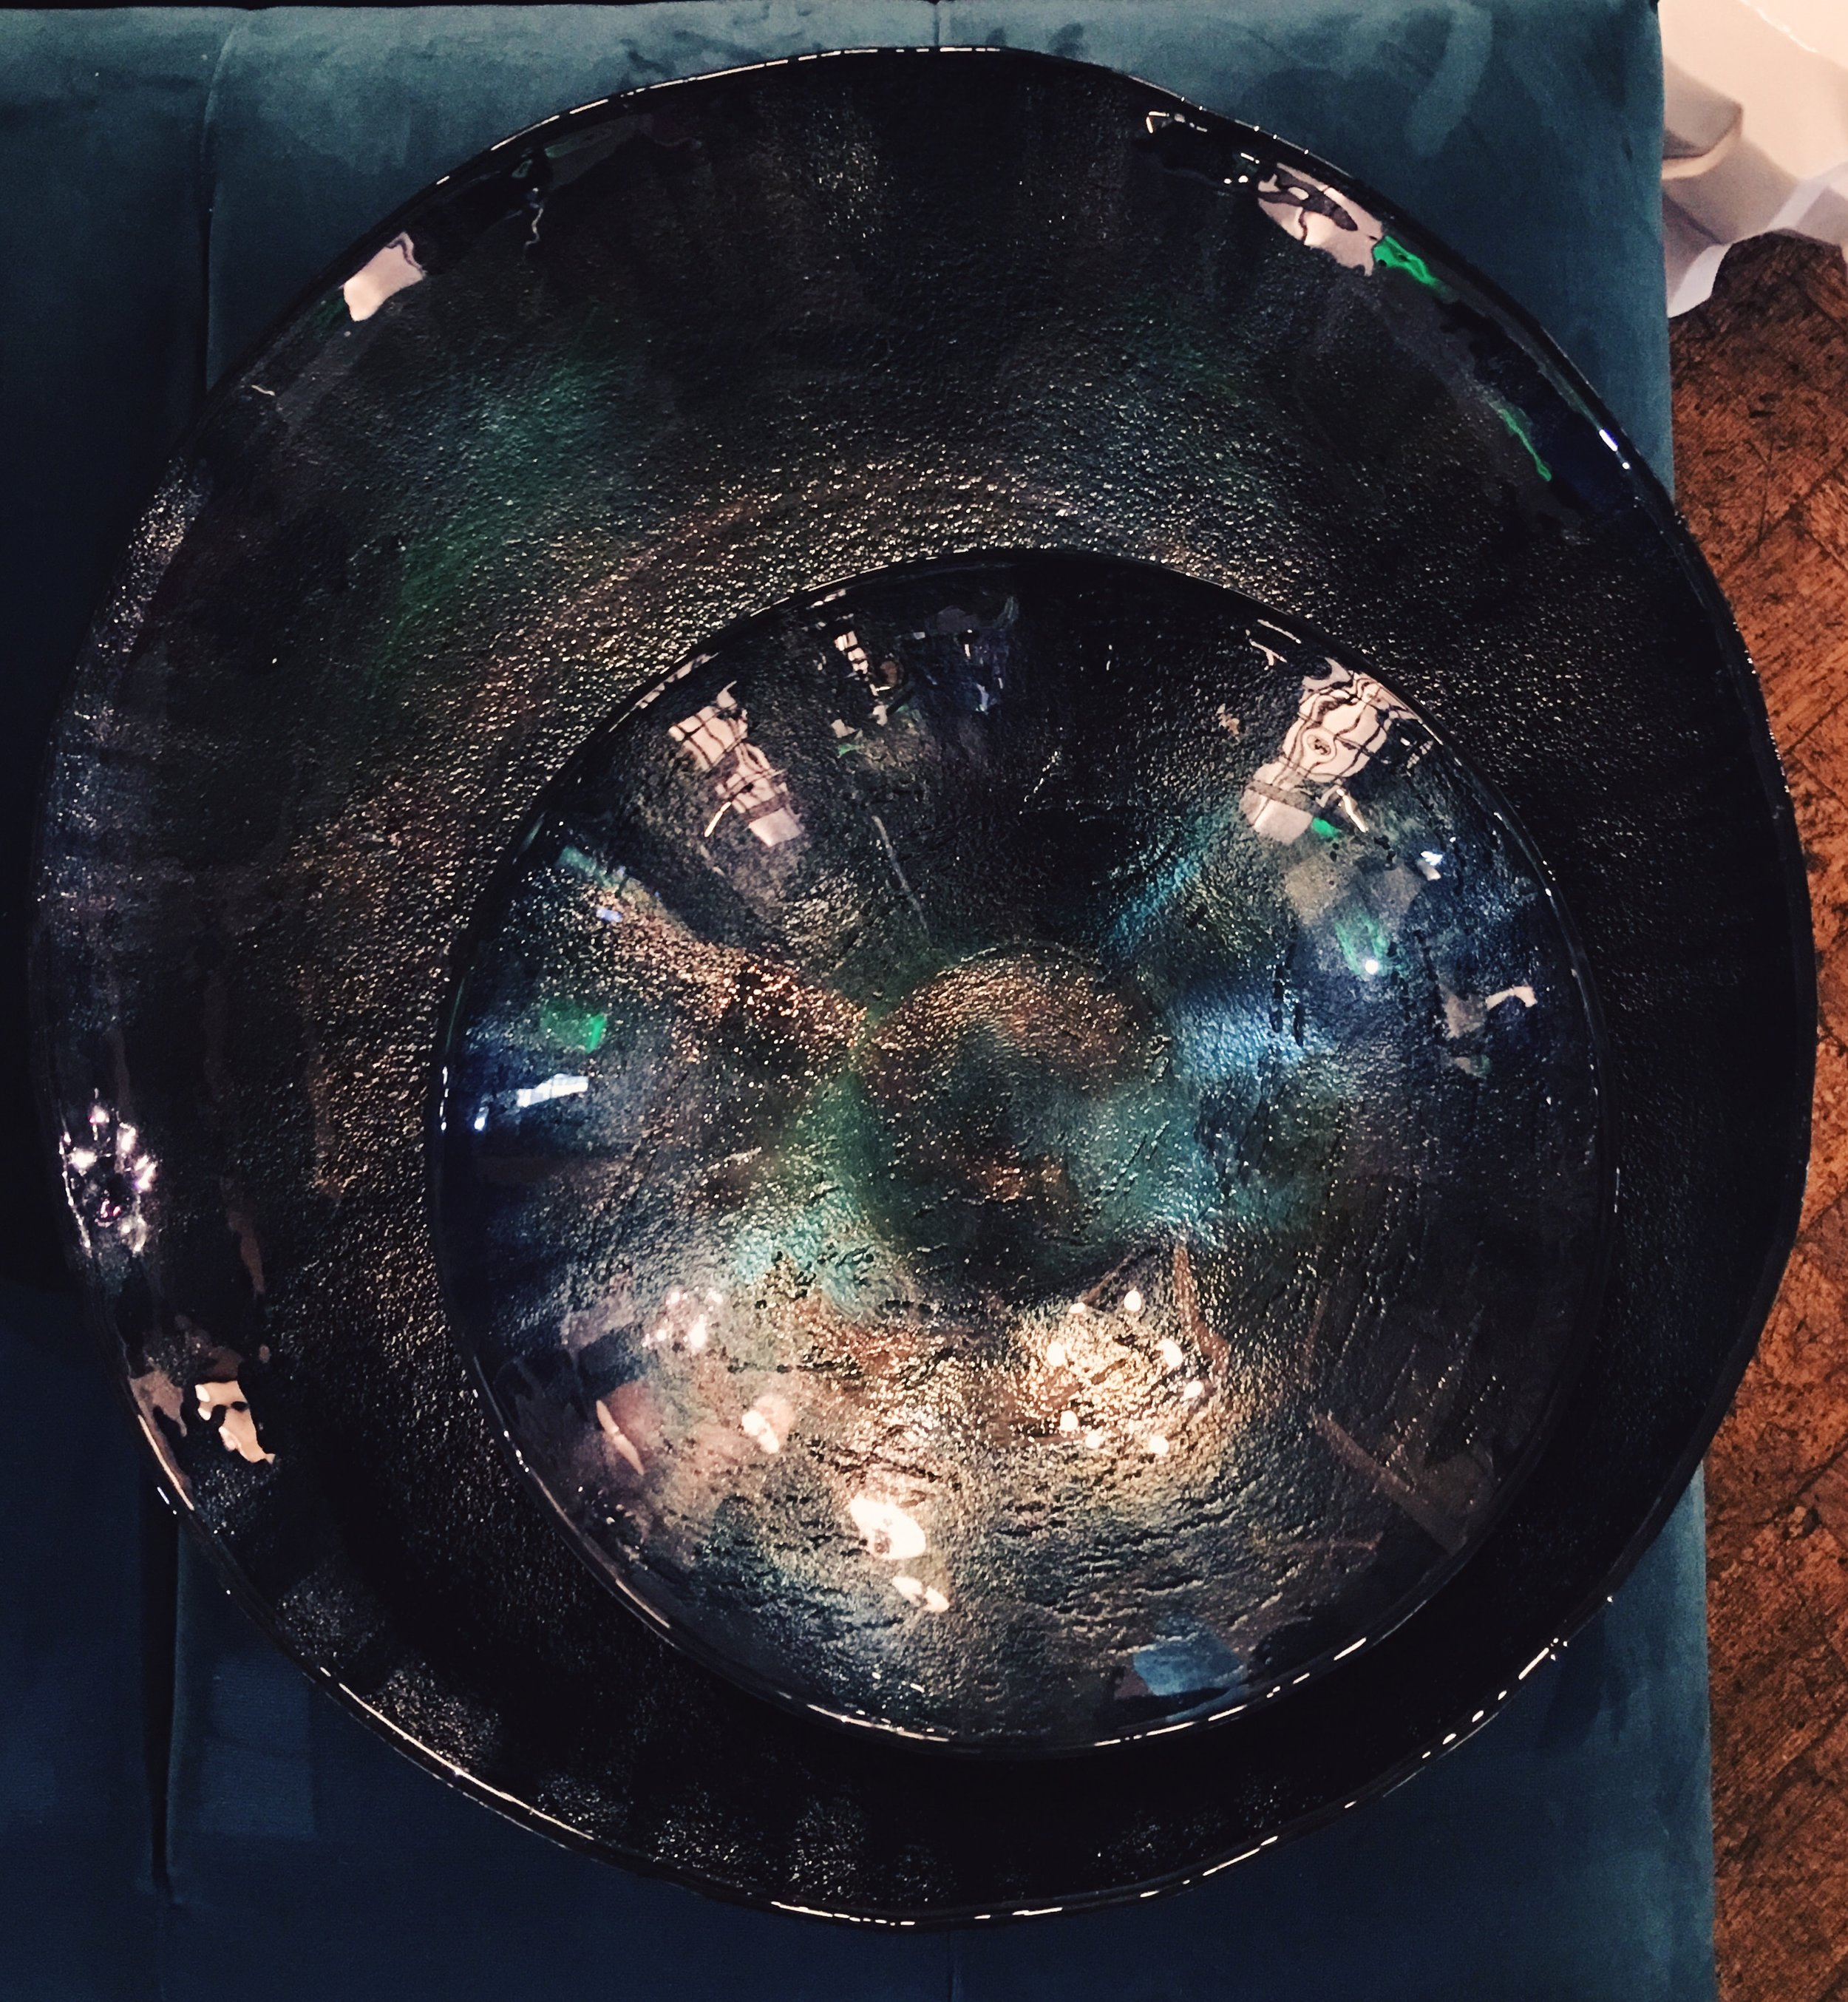 These two striking bowls are part of Next's 'Modish' Range.